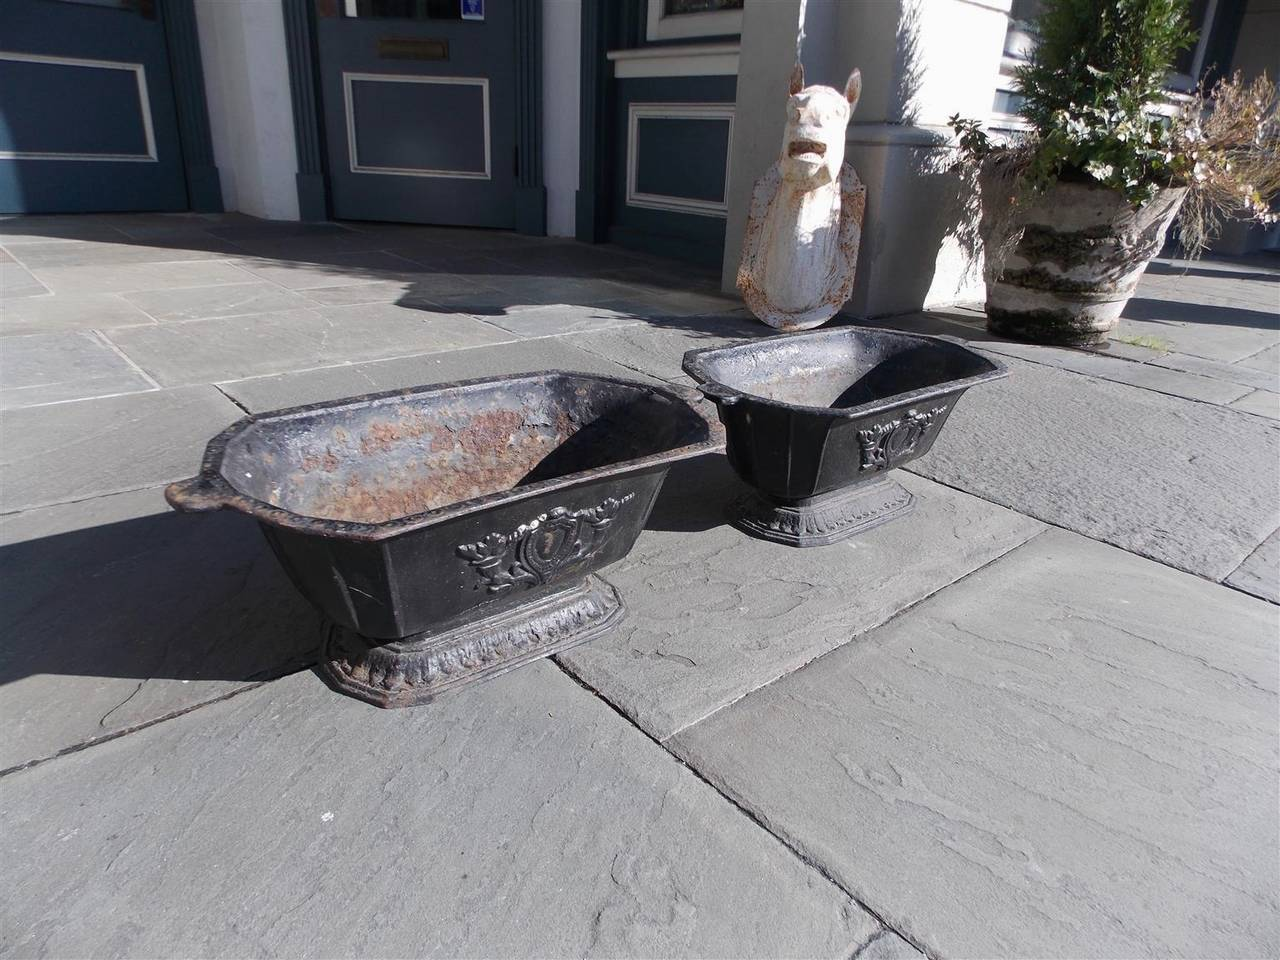 Pair of American cast iron rectangular floral crest planters with lambs tongue motif, Late 19th century.